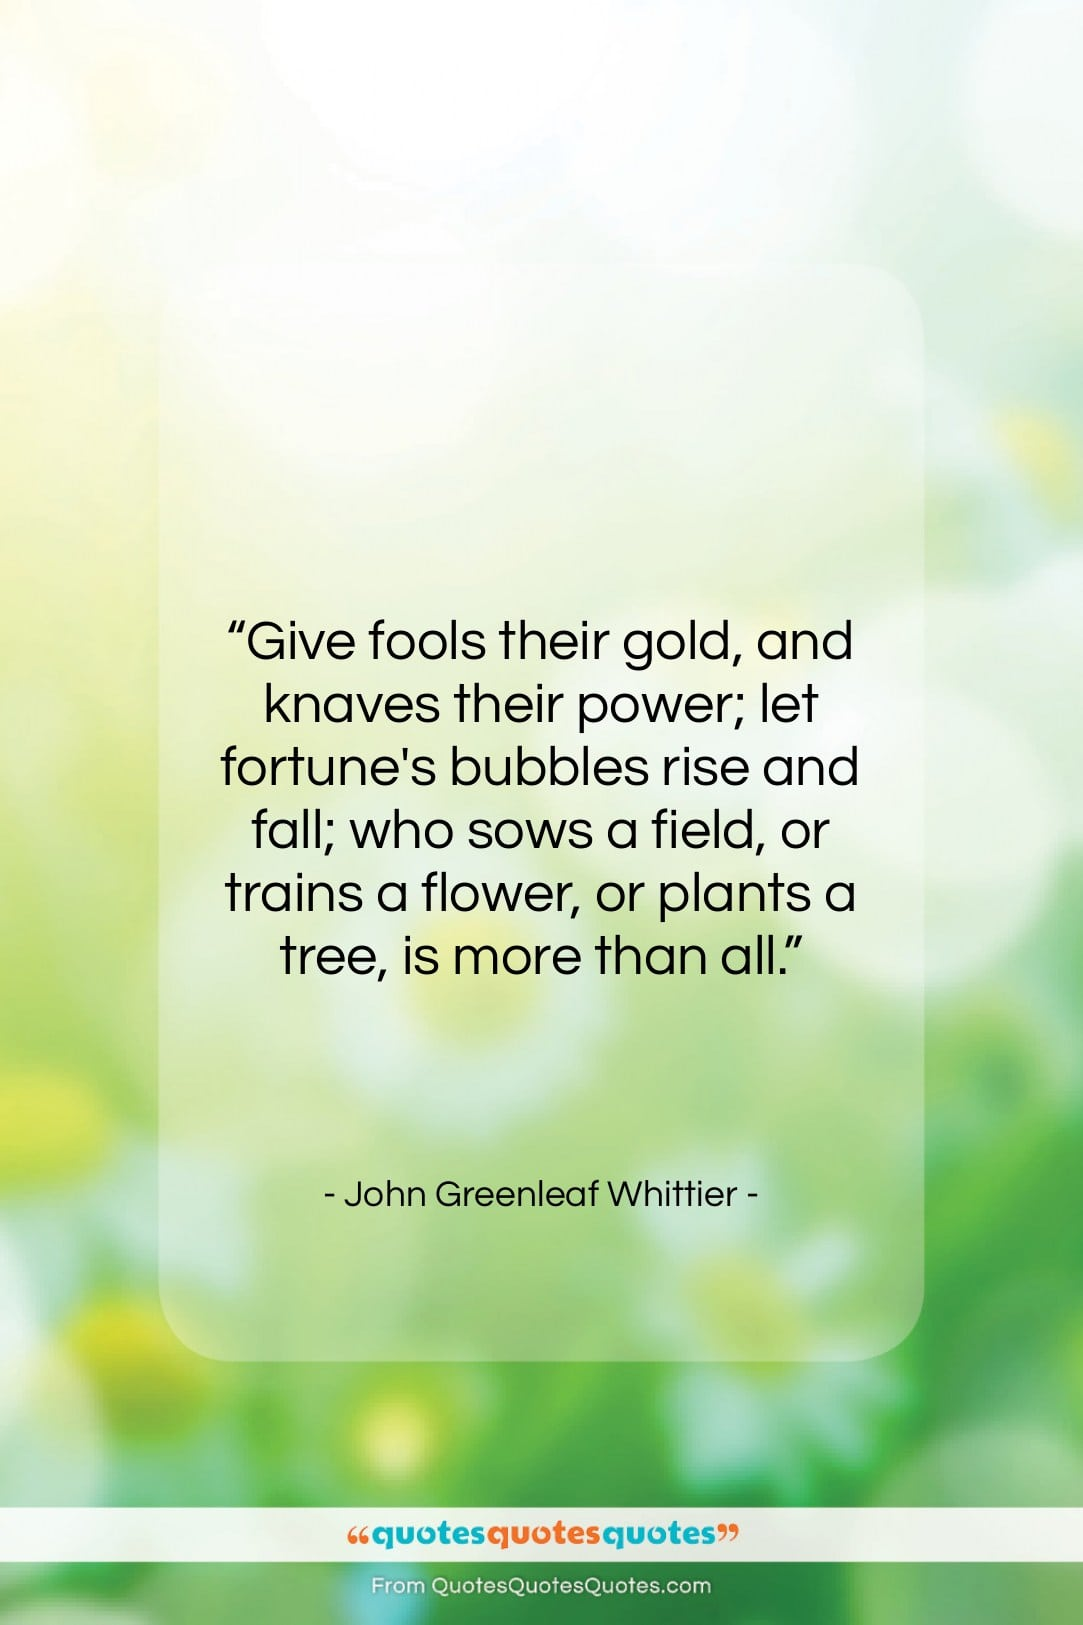 """John Greenleaf Whittier quote: """"Give fools their gold, and knaves their…""""- at QuotesQuotesQuotes.com"""